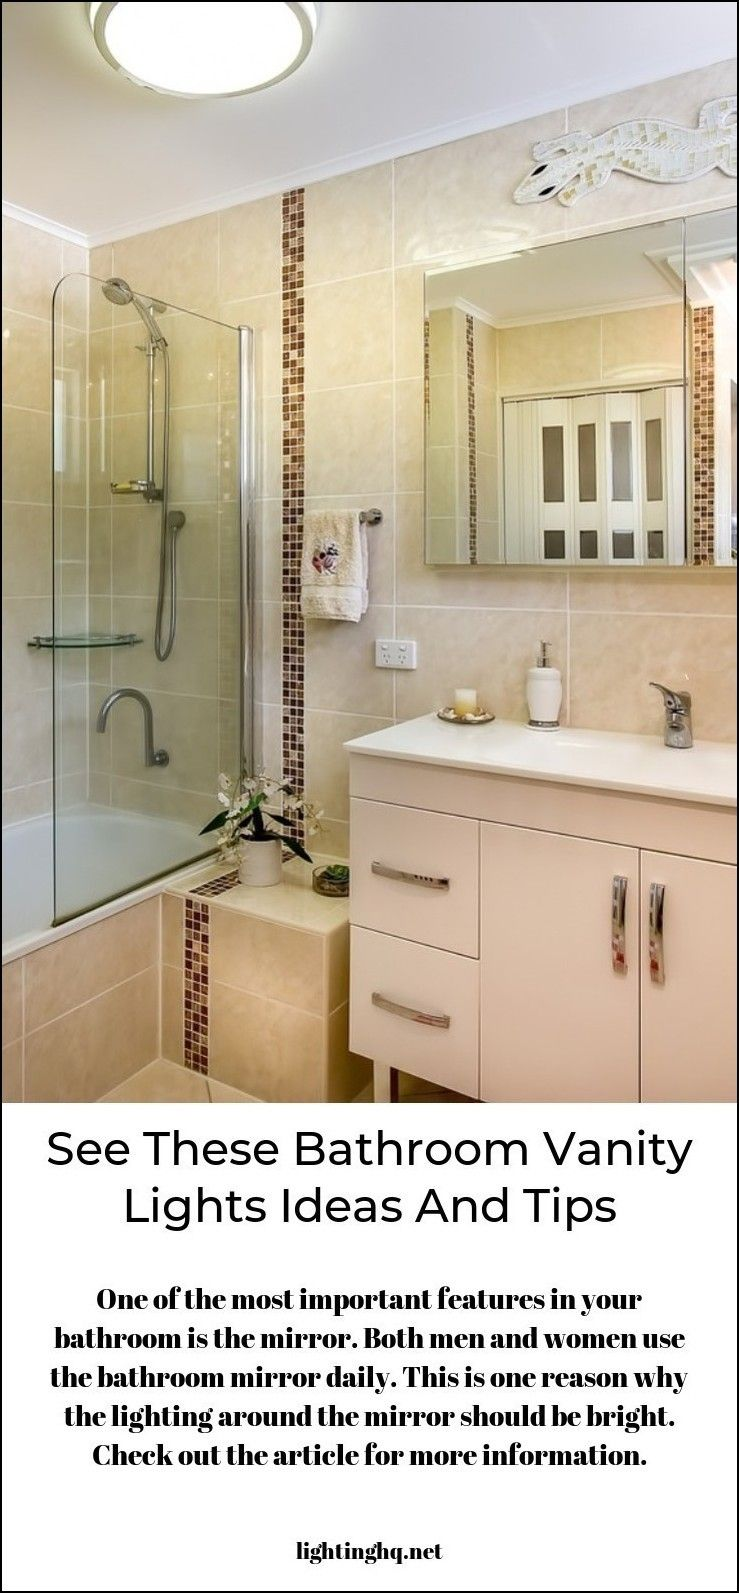 Visit the article to learn more about modern bath vanity light